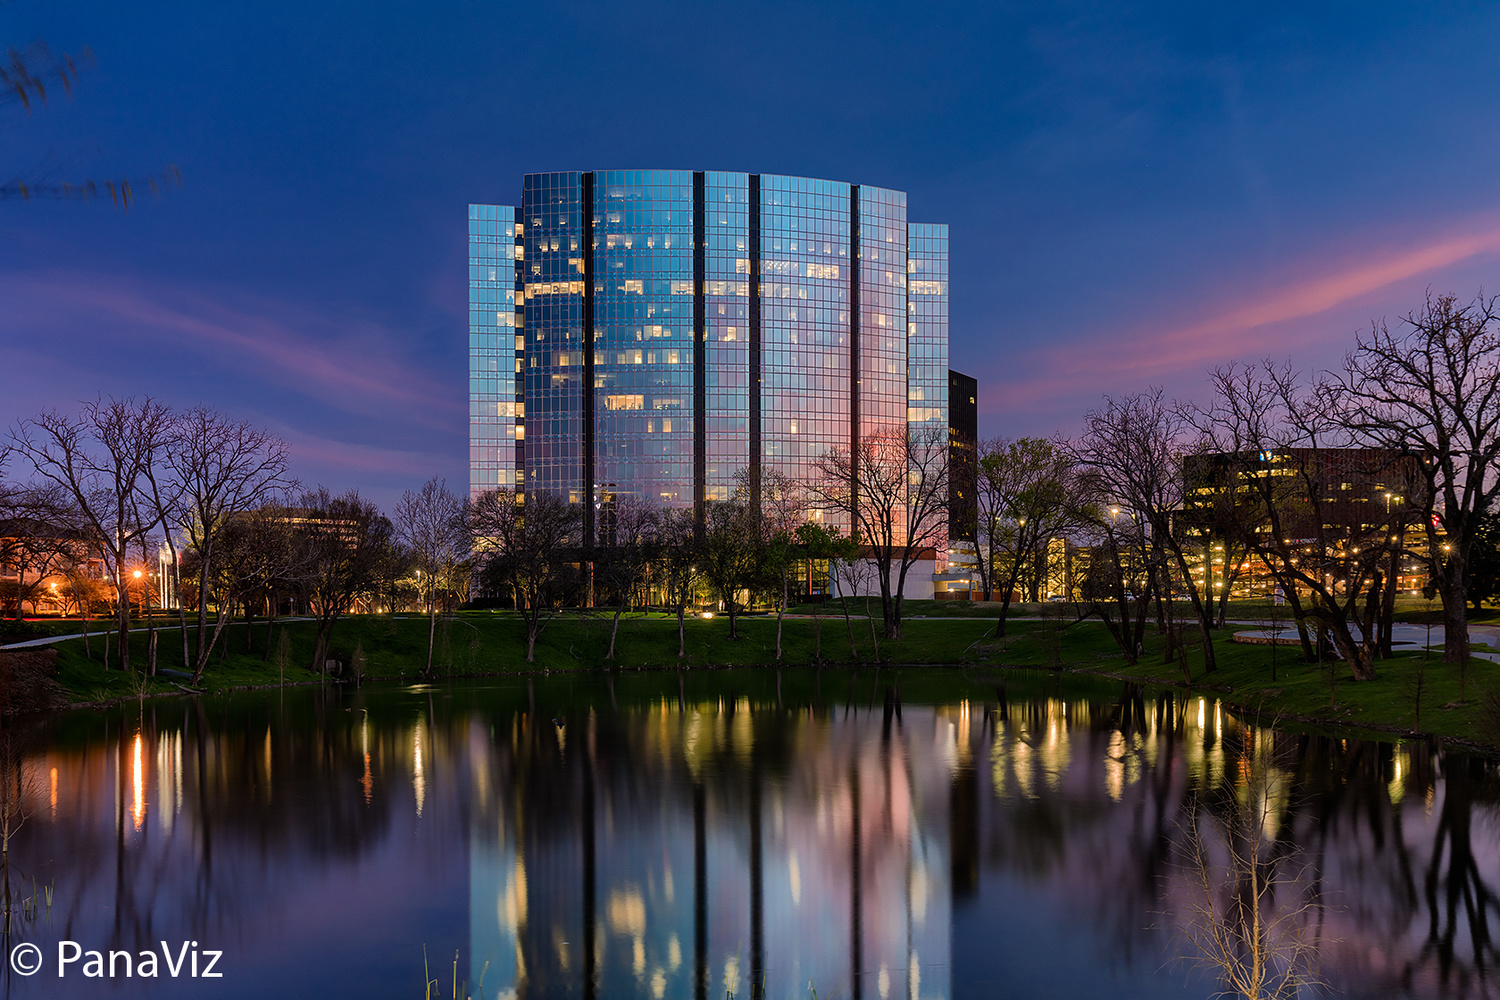 Building Reflection at Twilight by Dave Tonnes